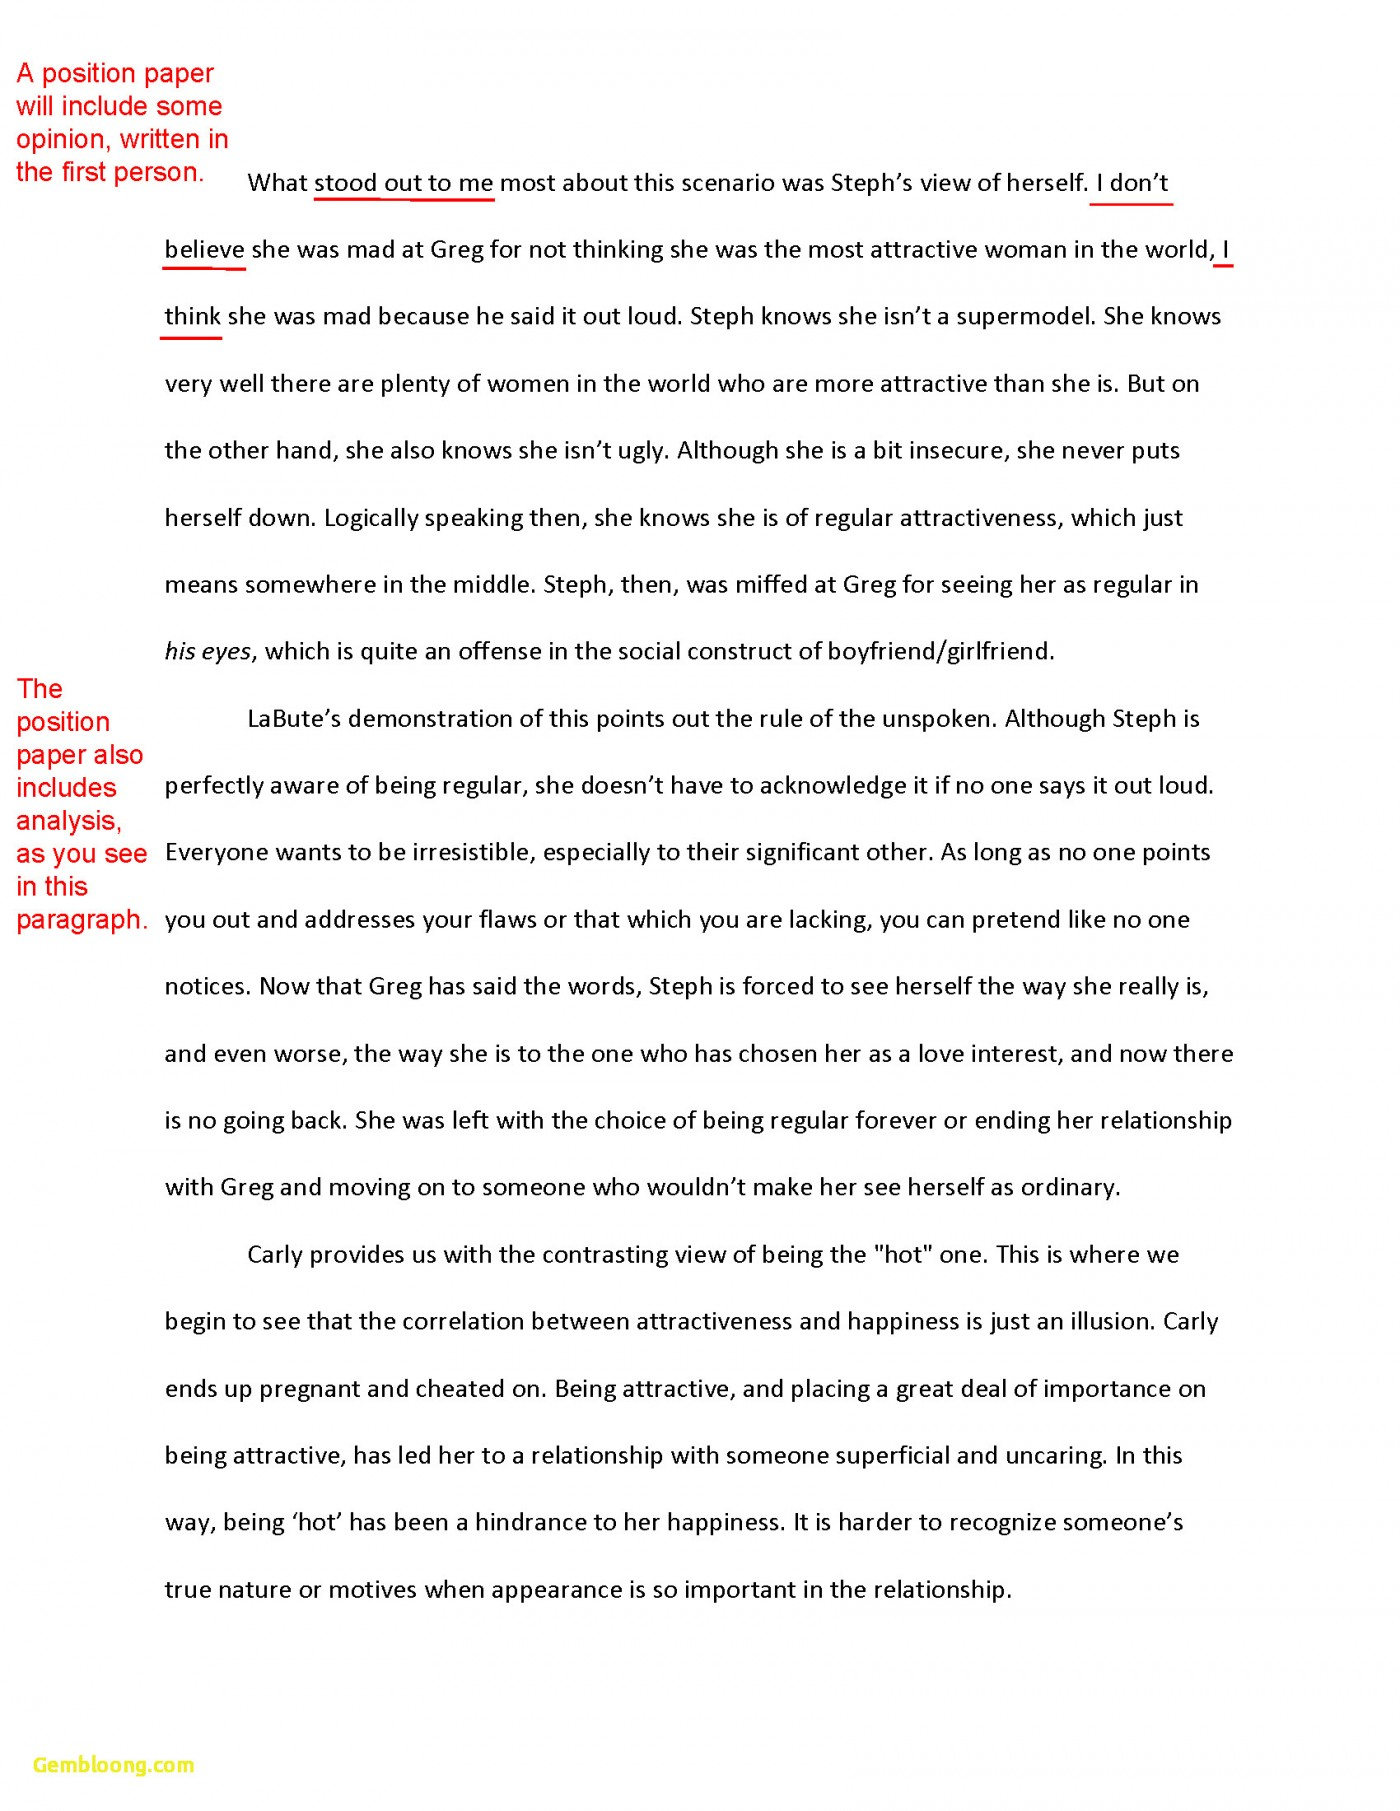 005 Apa Format Essay Example Sample New How To Write Response Paper Stupendous Citation Style Research 6th Edition Pdf 1400